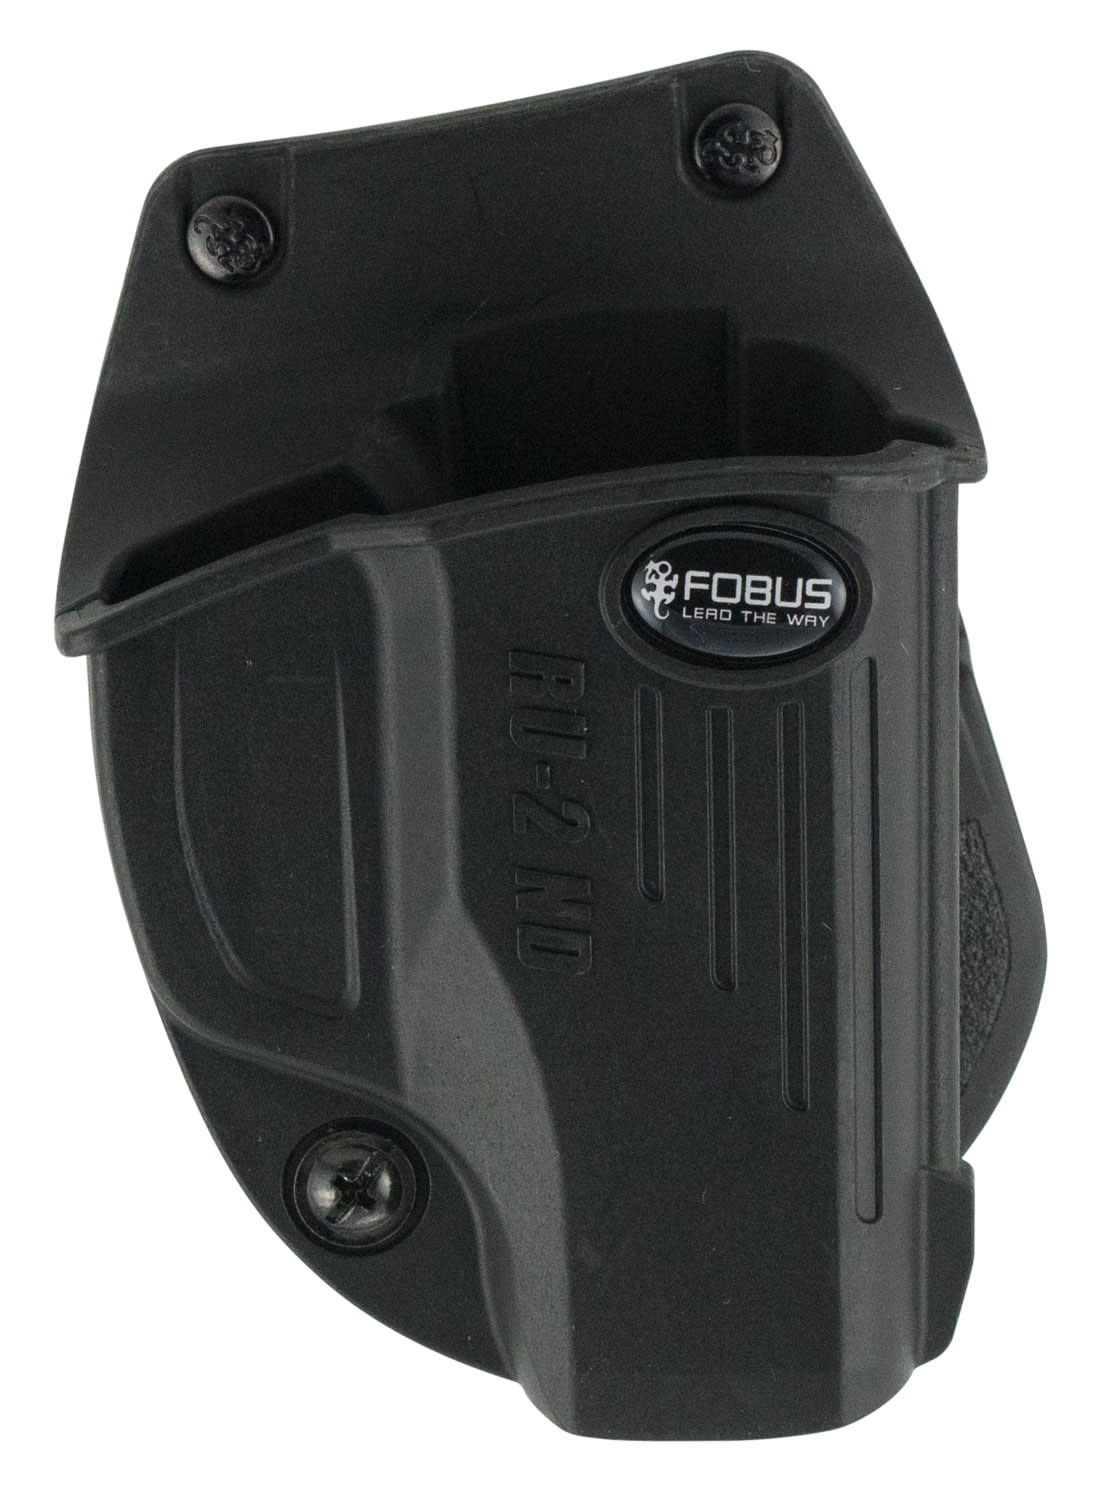 Fobus Evolution Paddle Holster - Taurus Judge